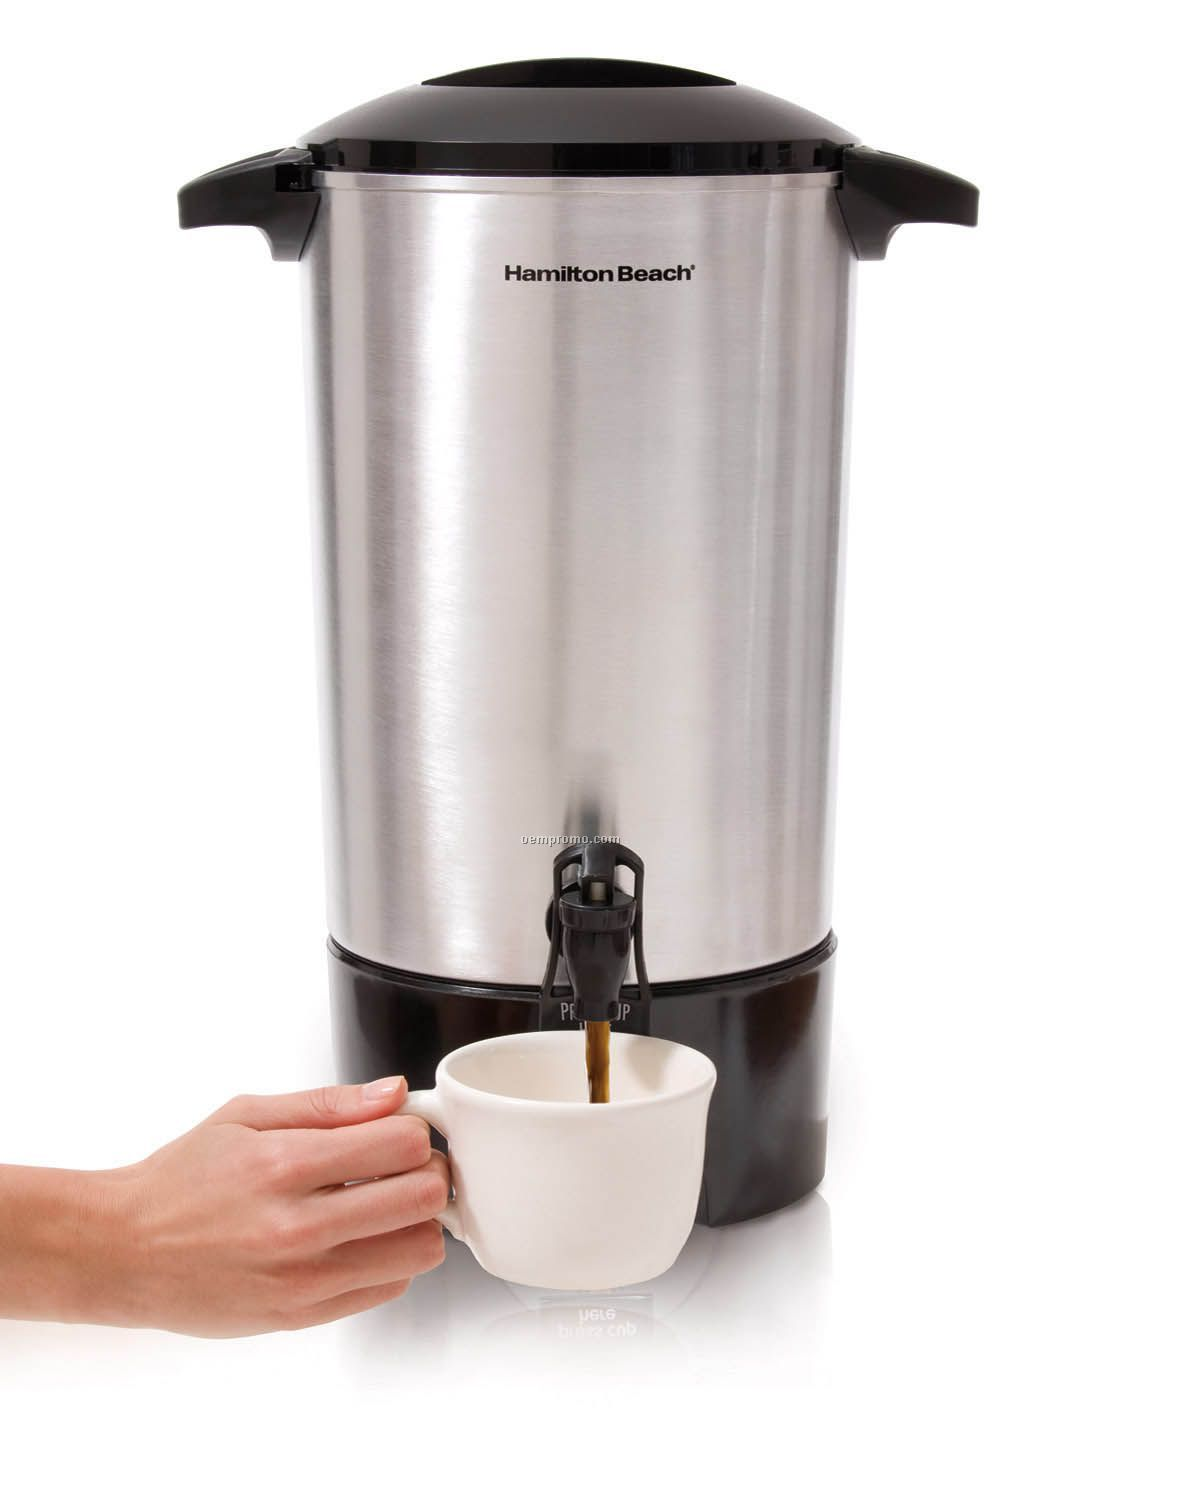 Regal Coffee Maker Instructions : How To Clean Aluminum: How To Clean Aluminum Coffee Urn